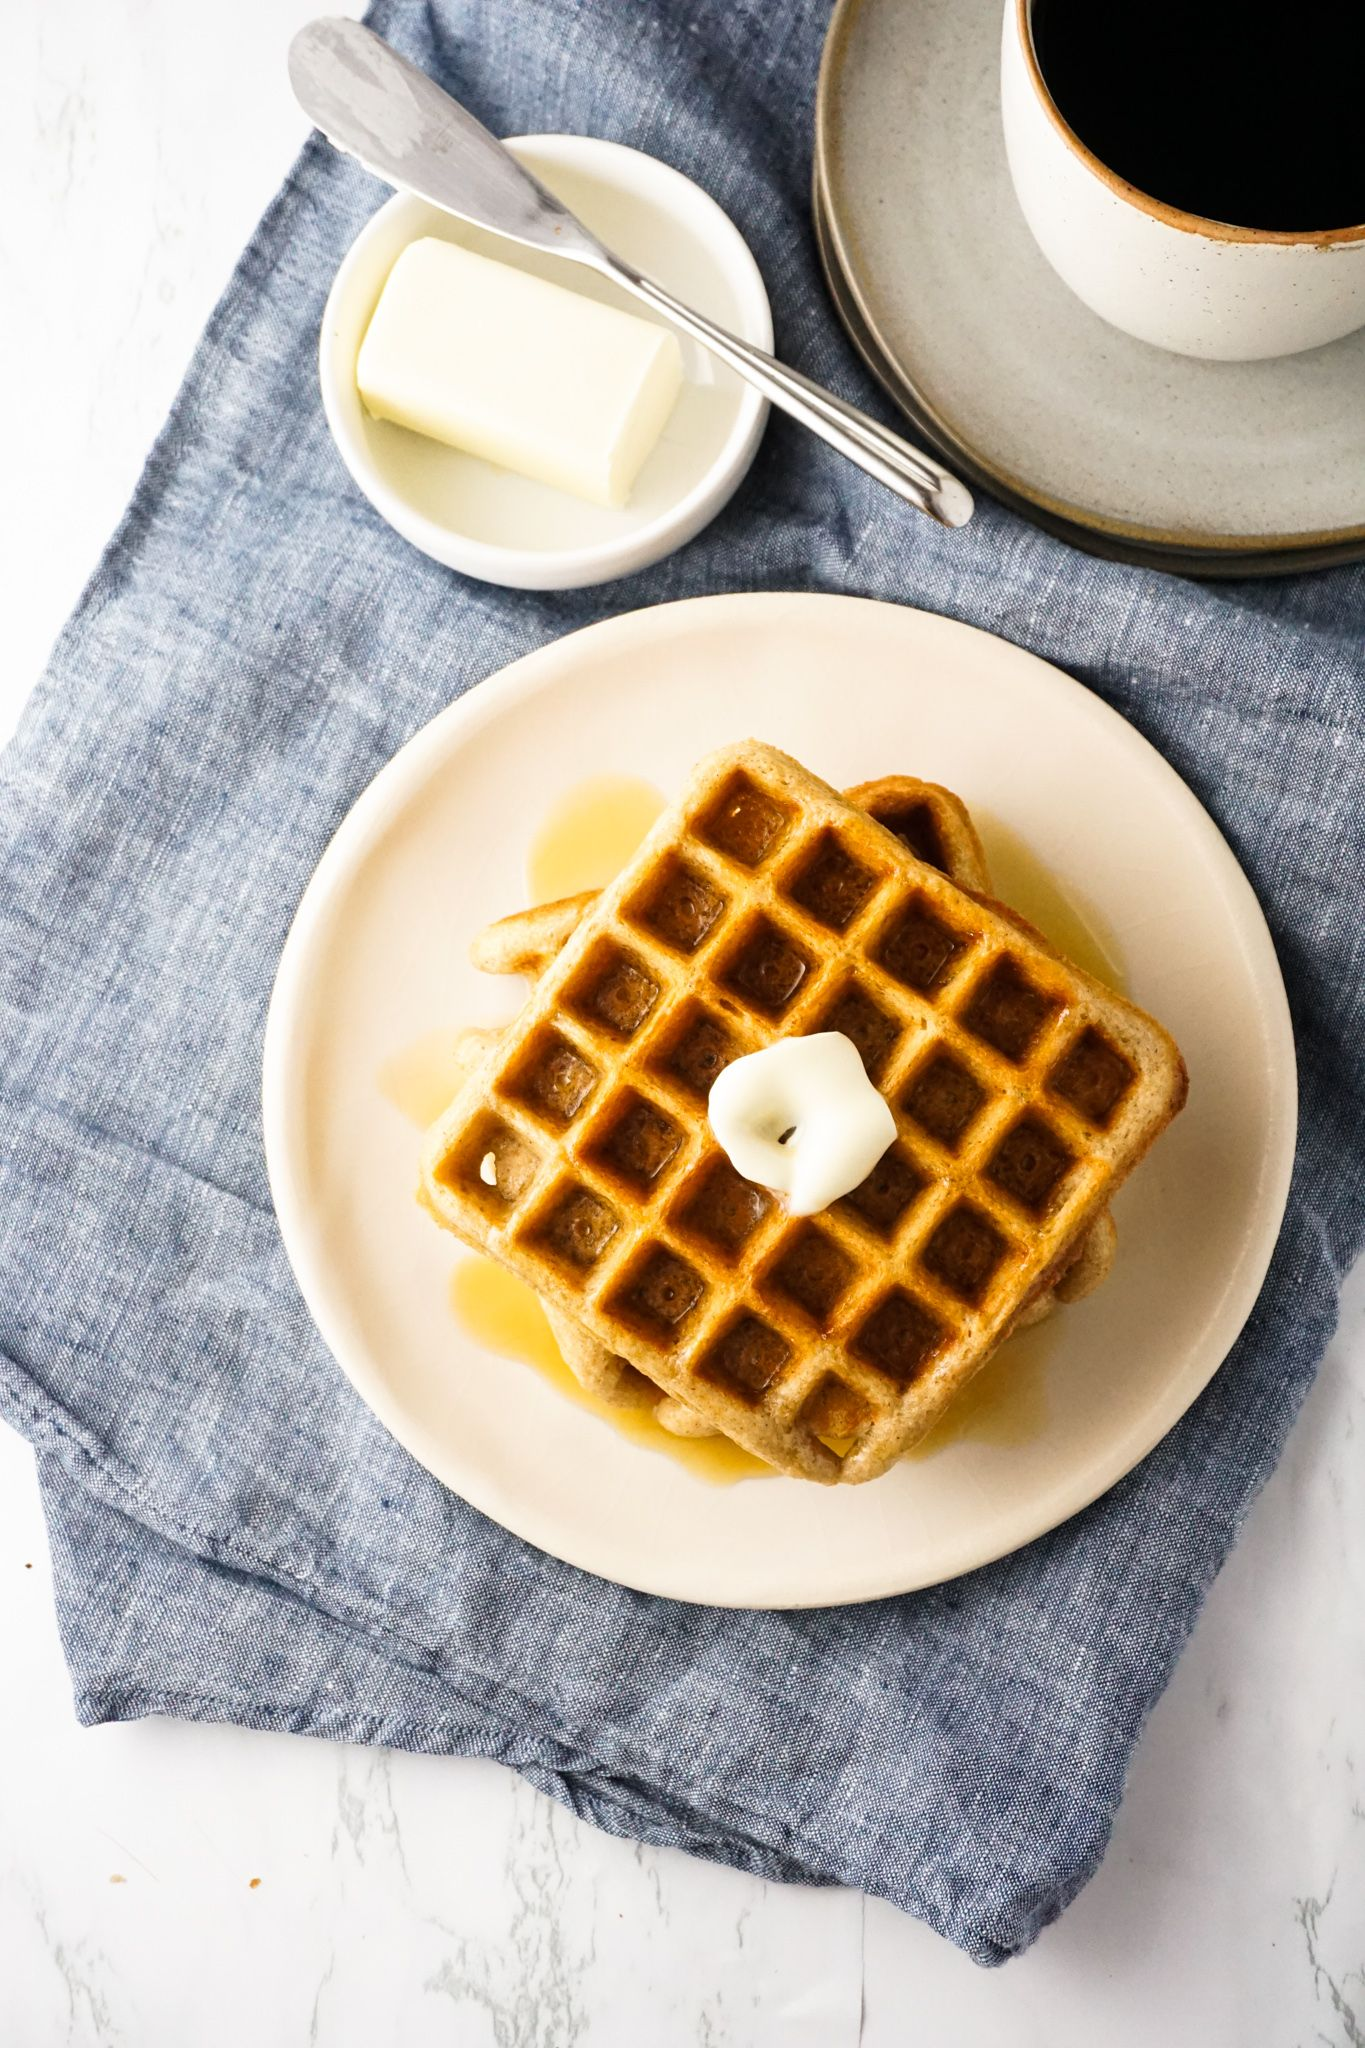 Classic Whole Wheat Buttermilk Waffles Hungry Haley In 2020 Buttermilk Waffles Waffles Baking Science